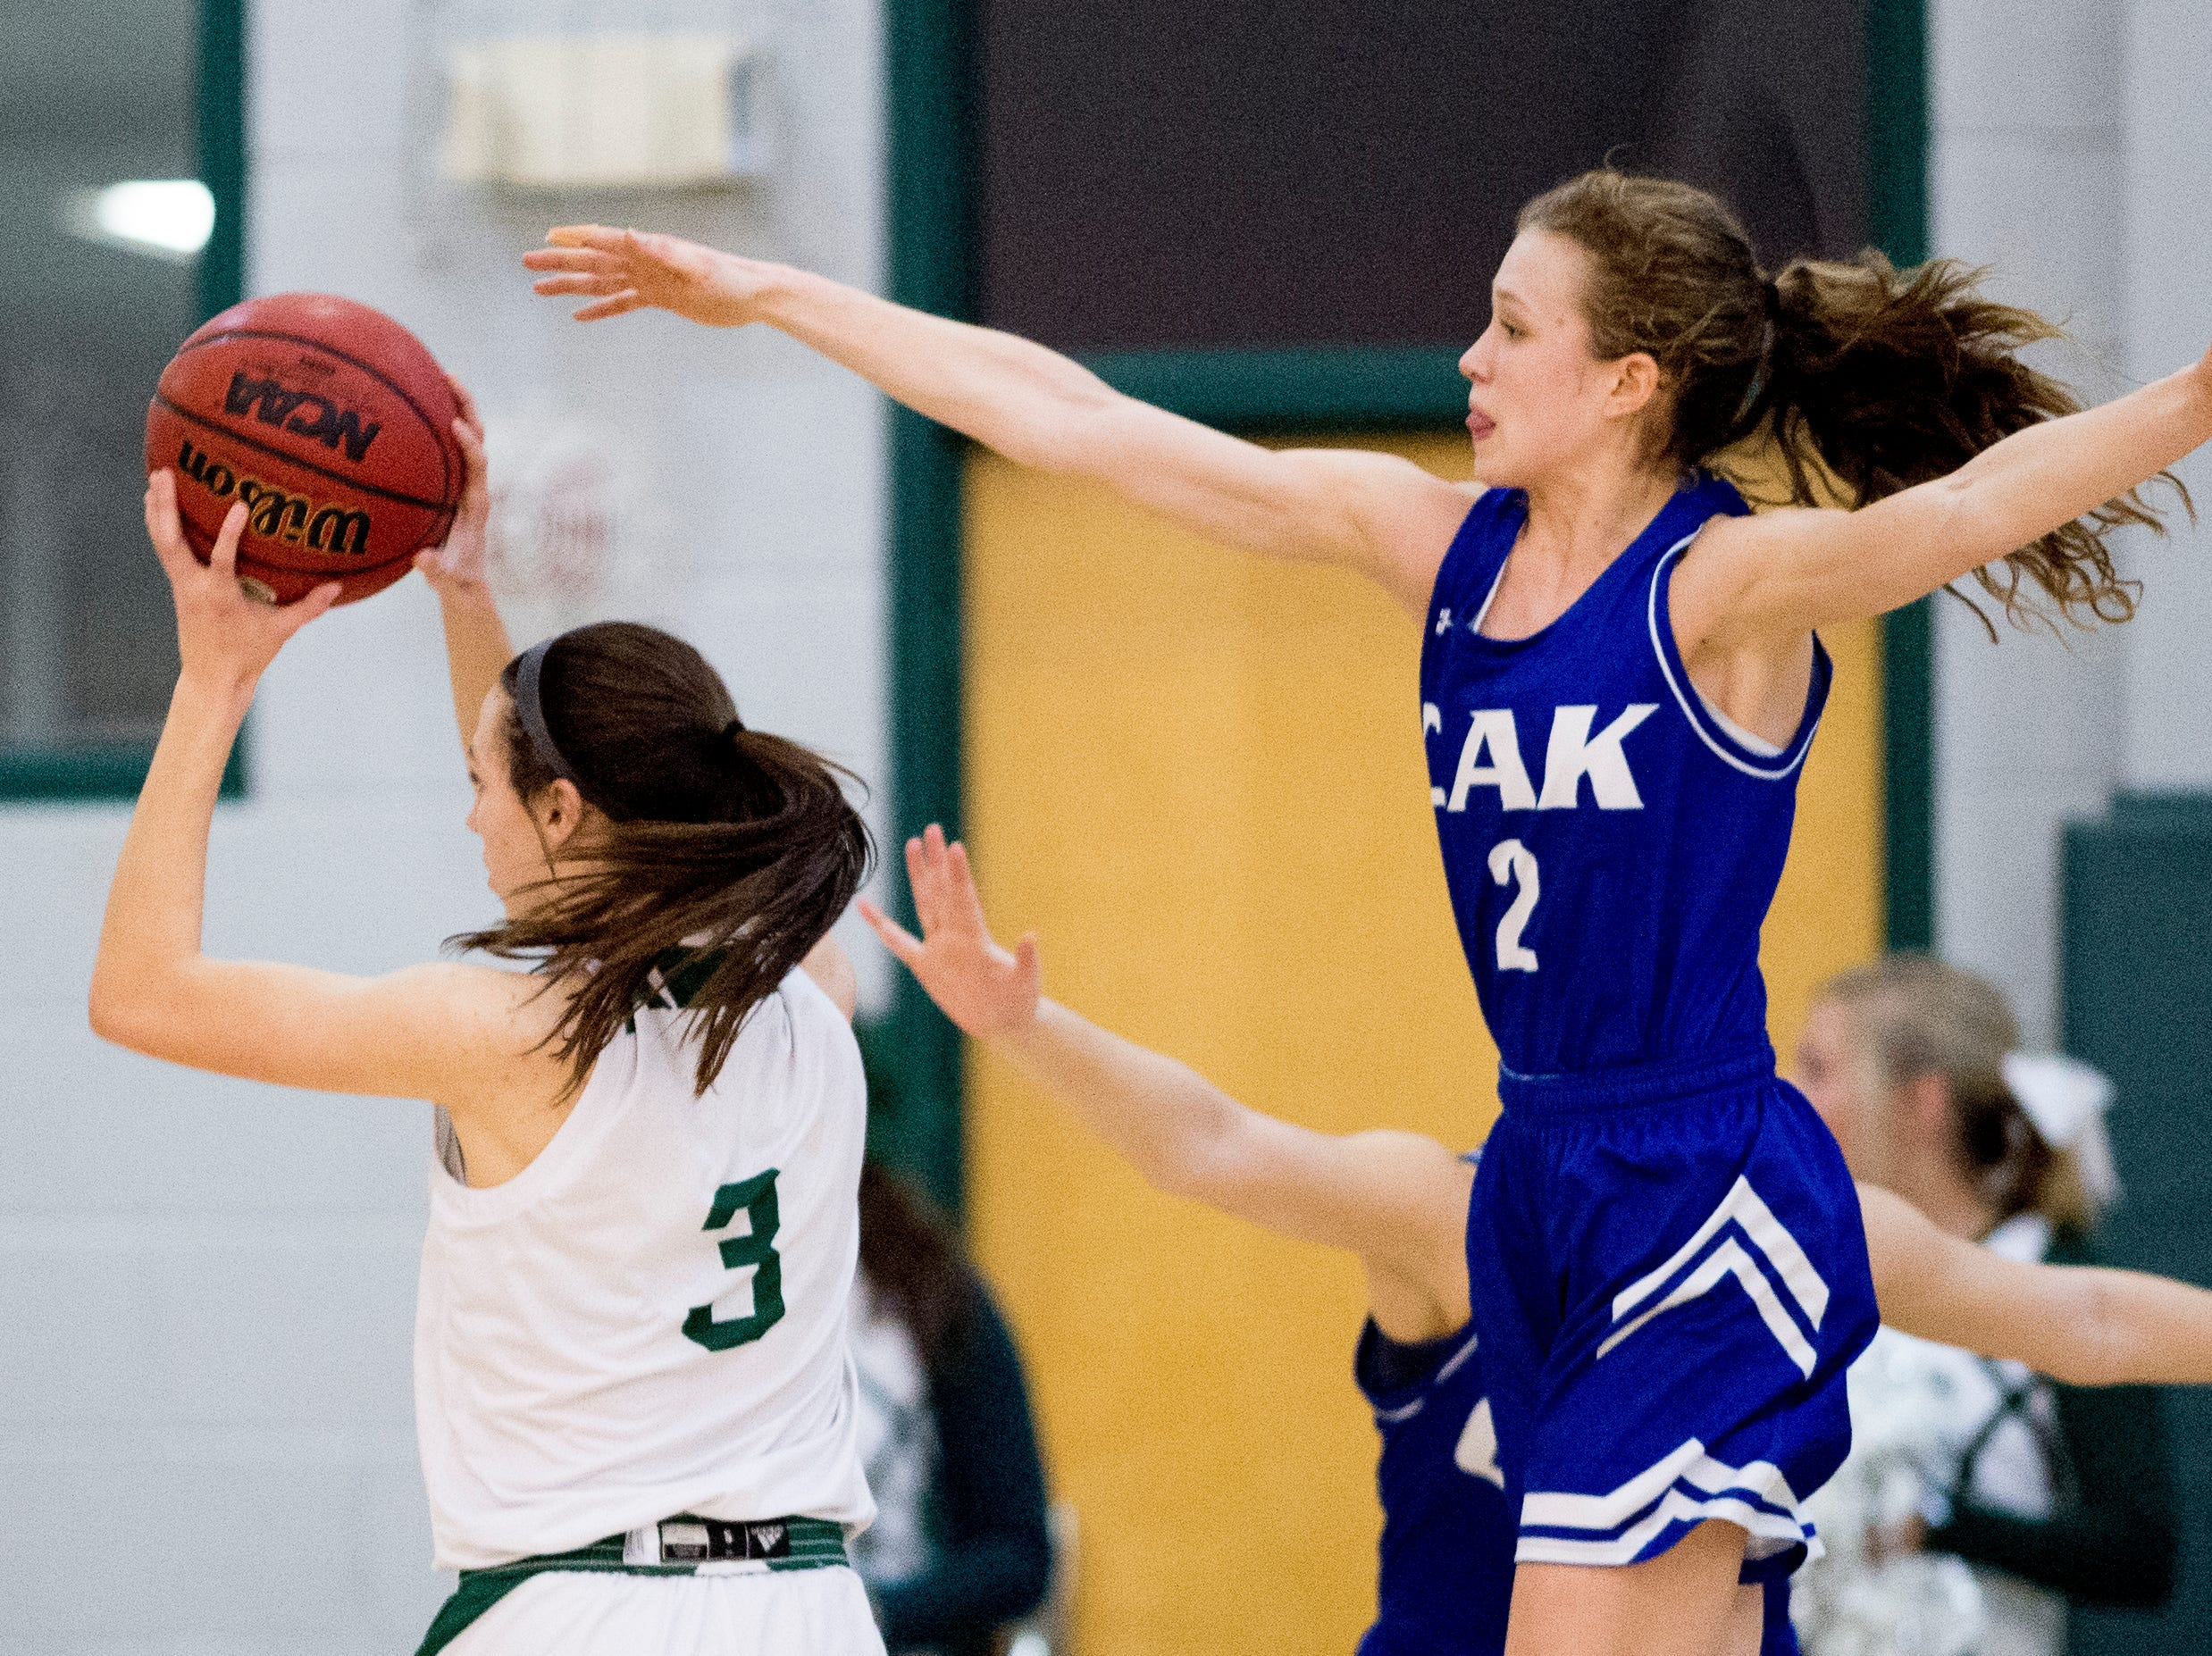 CAK's Claire Brock (2) defends against Audrey Carter (3) during a semifinal game between CAK and Silverdale at Webb School of Knoxville in Knoxville, Tennessee on Friday, February 15, 2019.